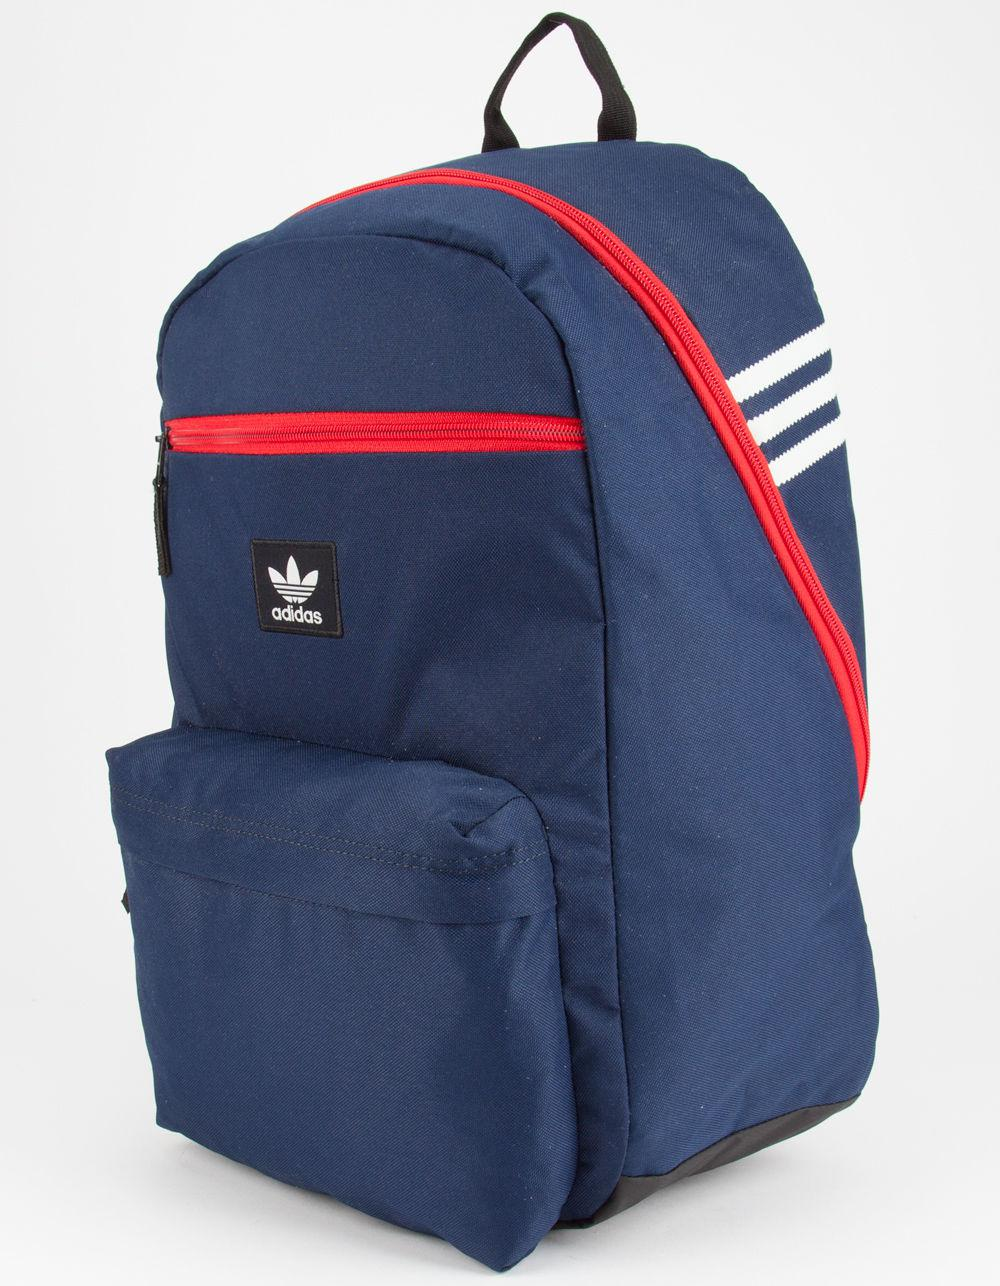 d51b2aab833f Adidas Originals Blue Backpack Camo- Fenix Toulouse Handball